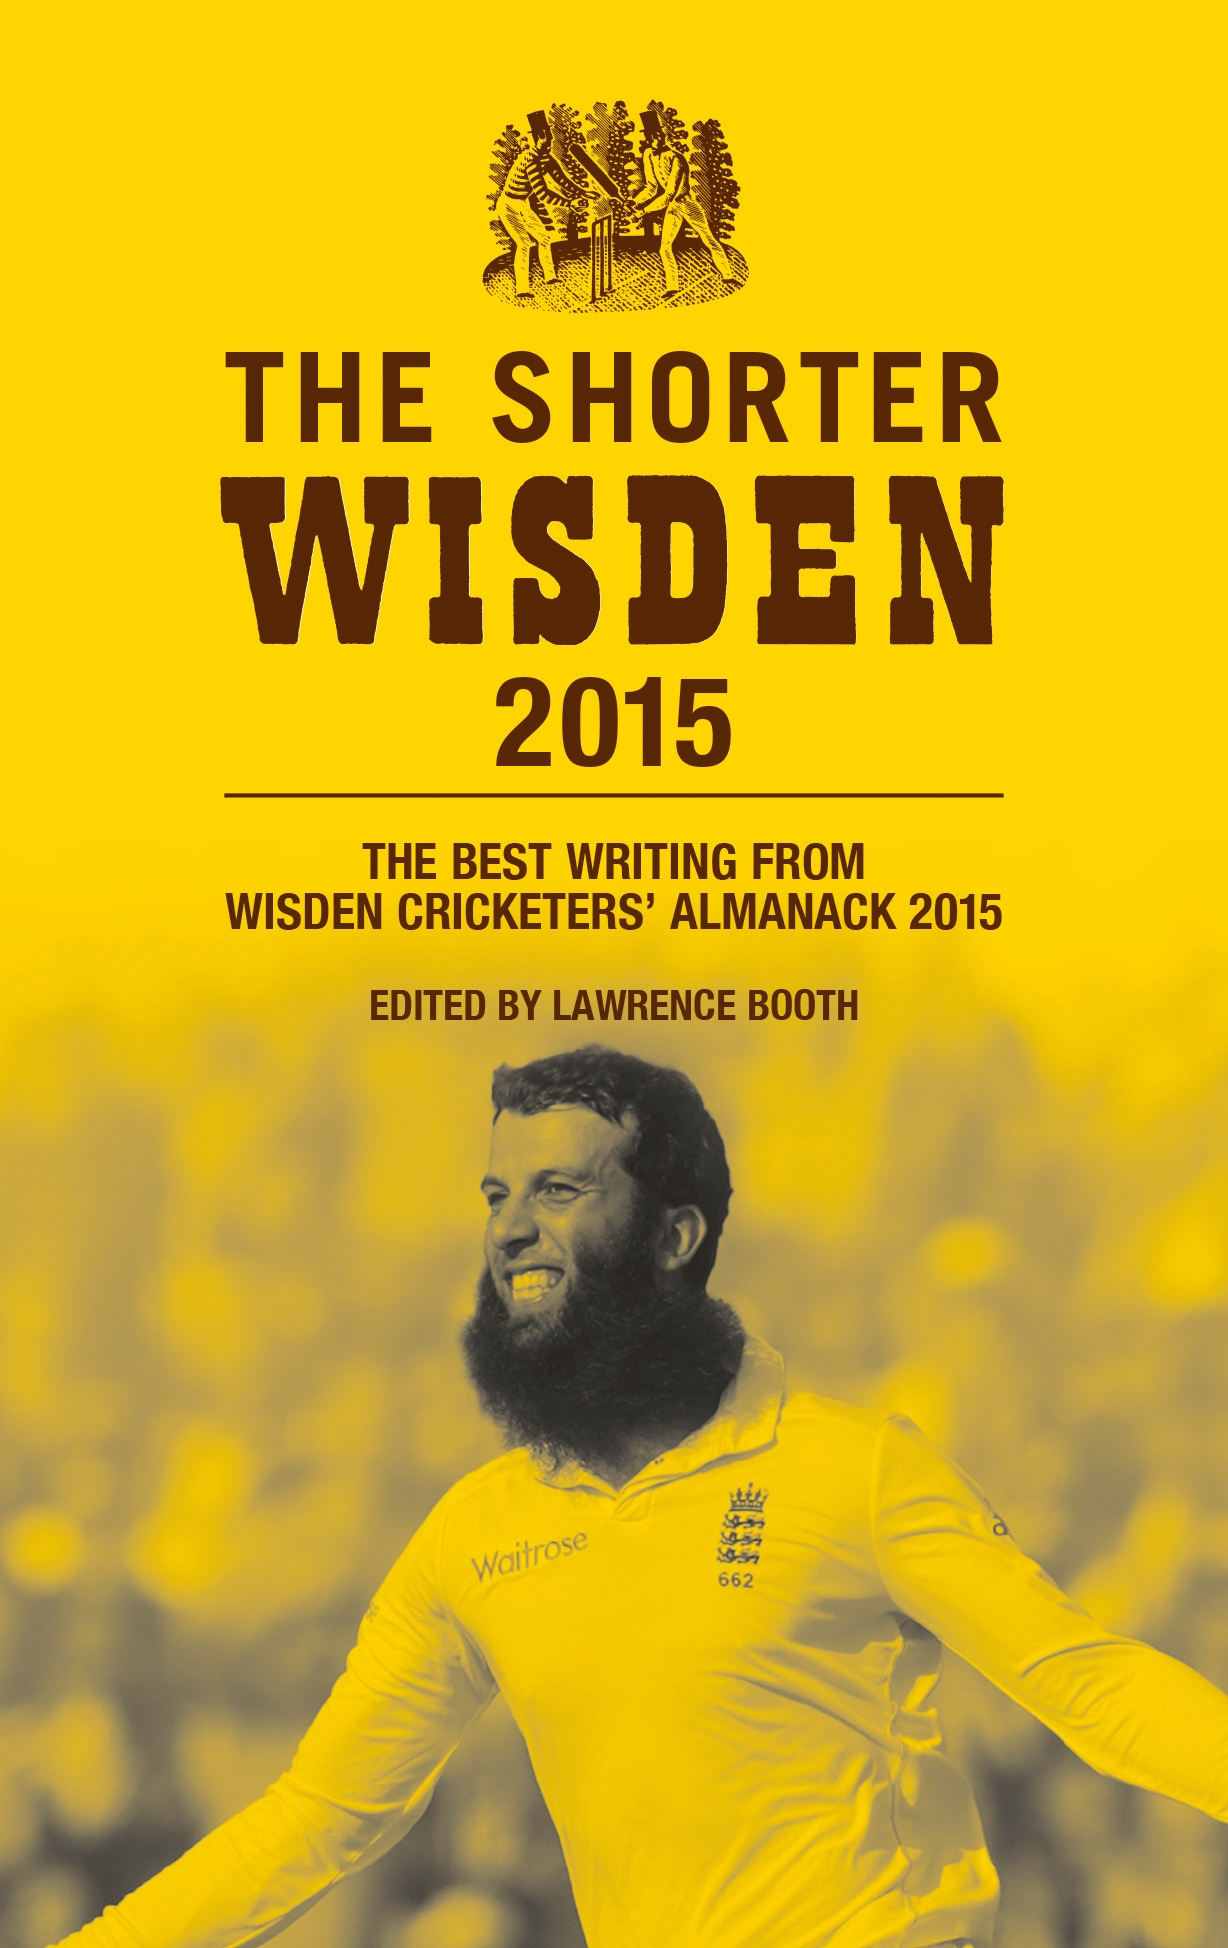 The Shorter Wisden 2015 The Best Writing from Wisden Cricketers' Almanack 2015